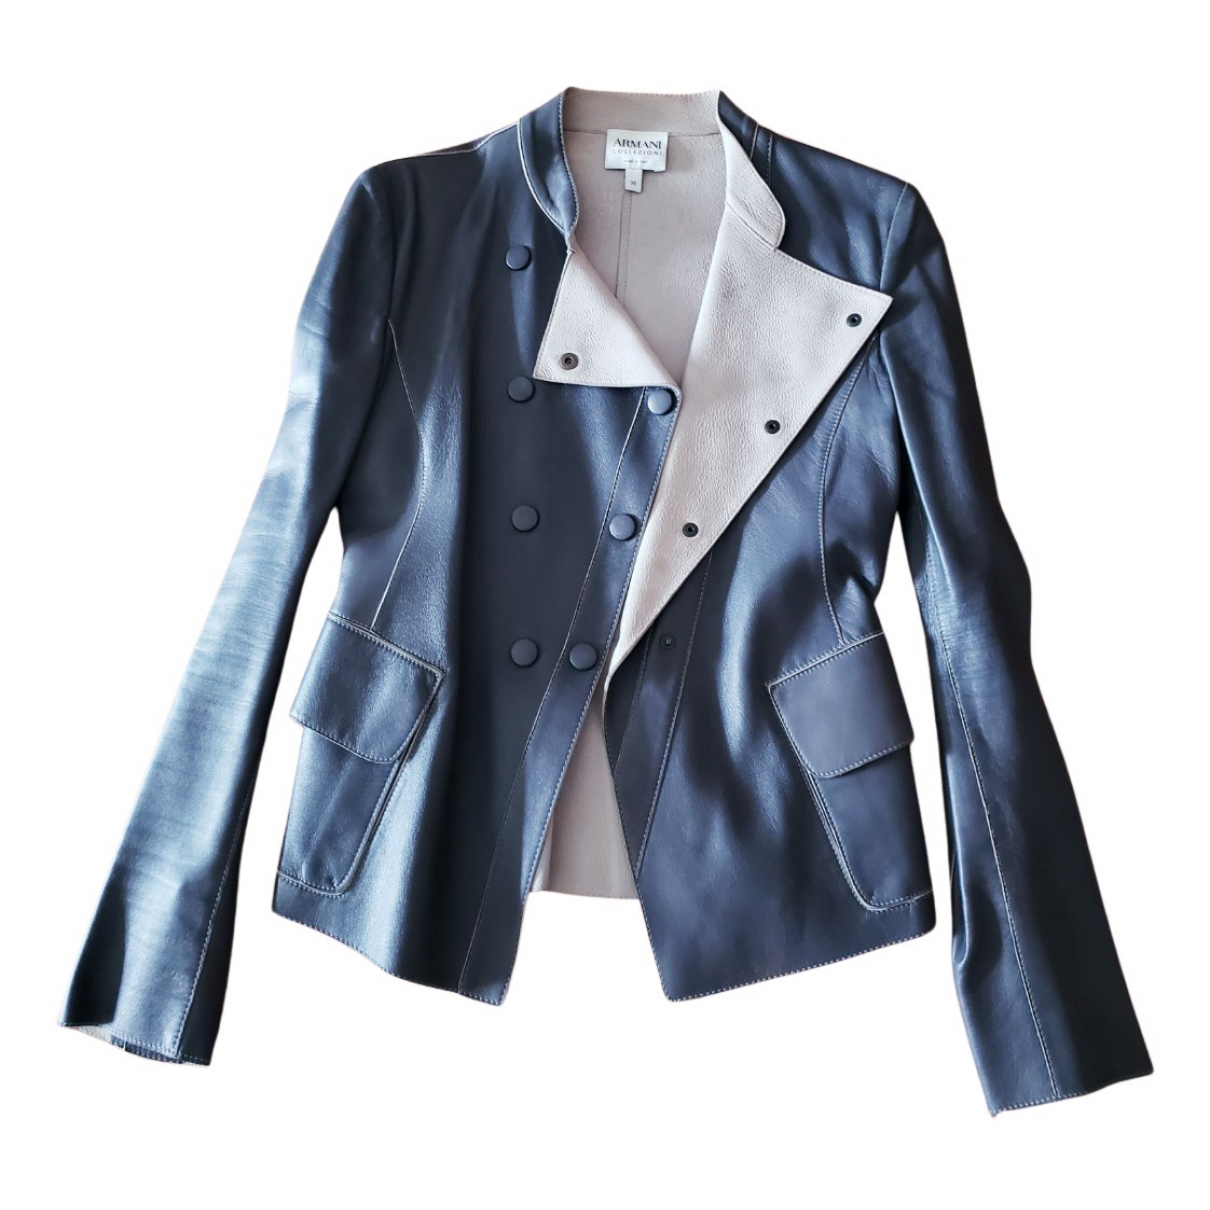 Armani Collezioni N Grey Leather Leather jacket for Women 38 IT